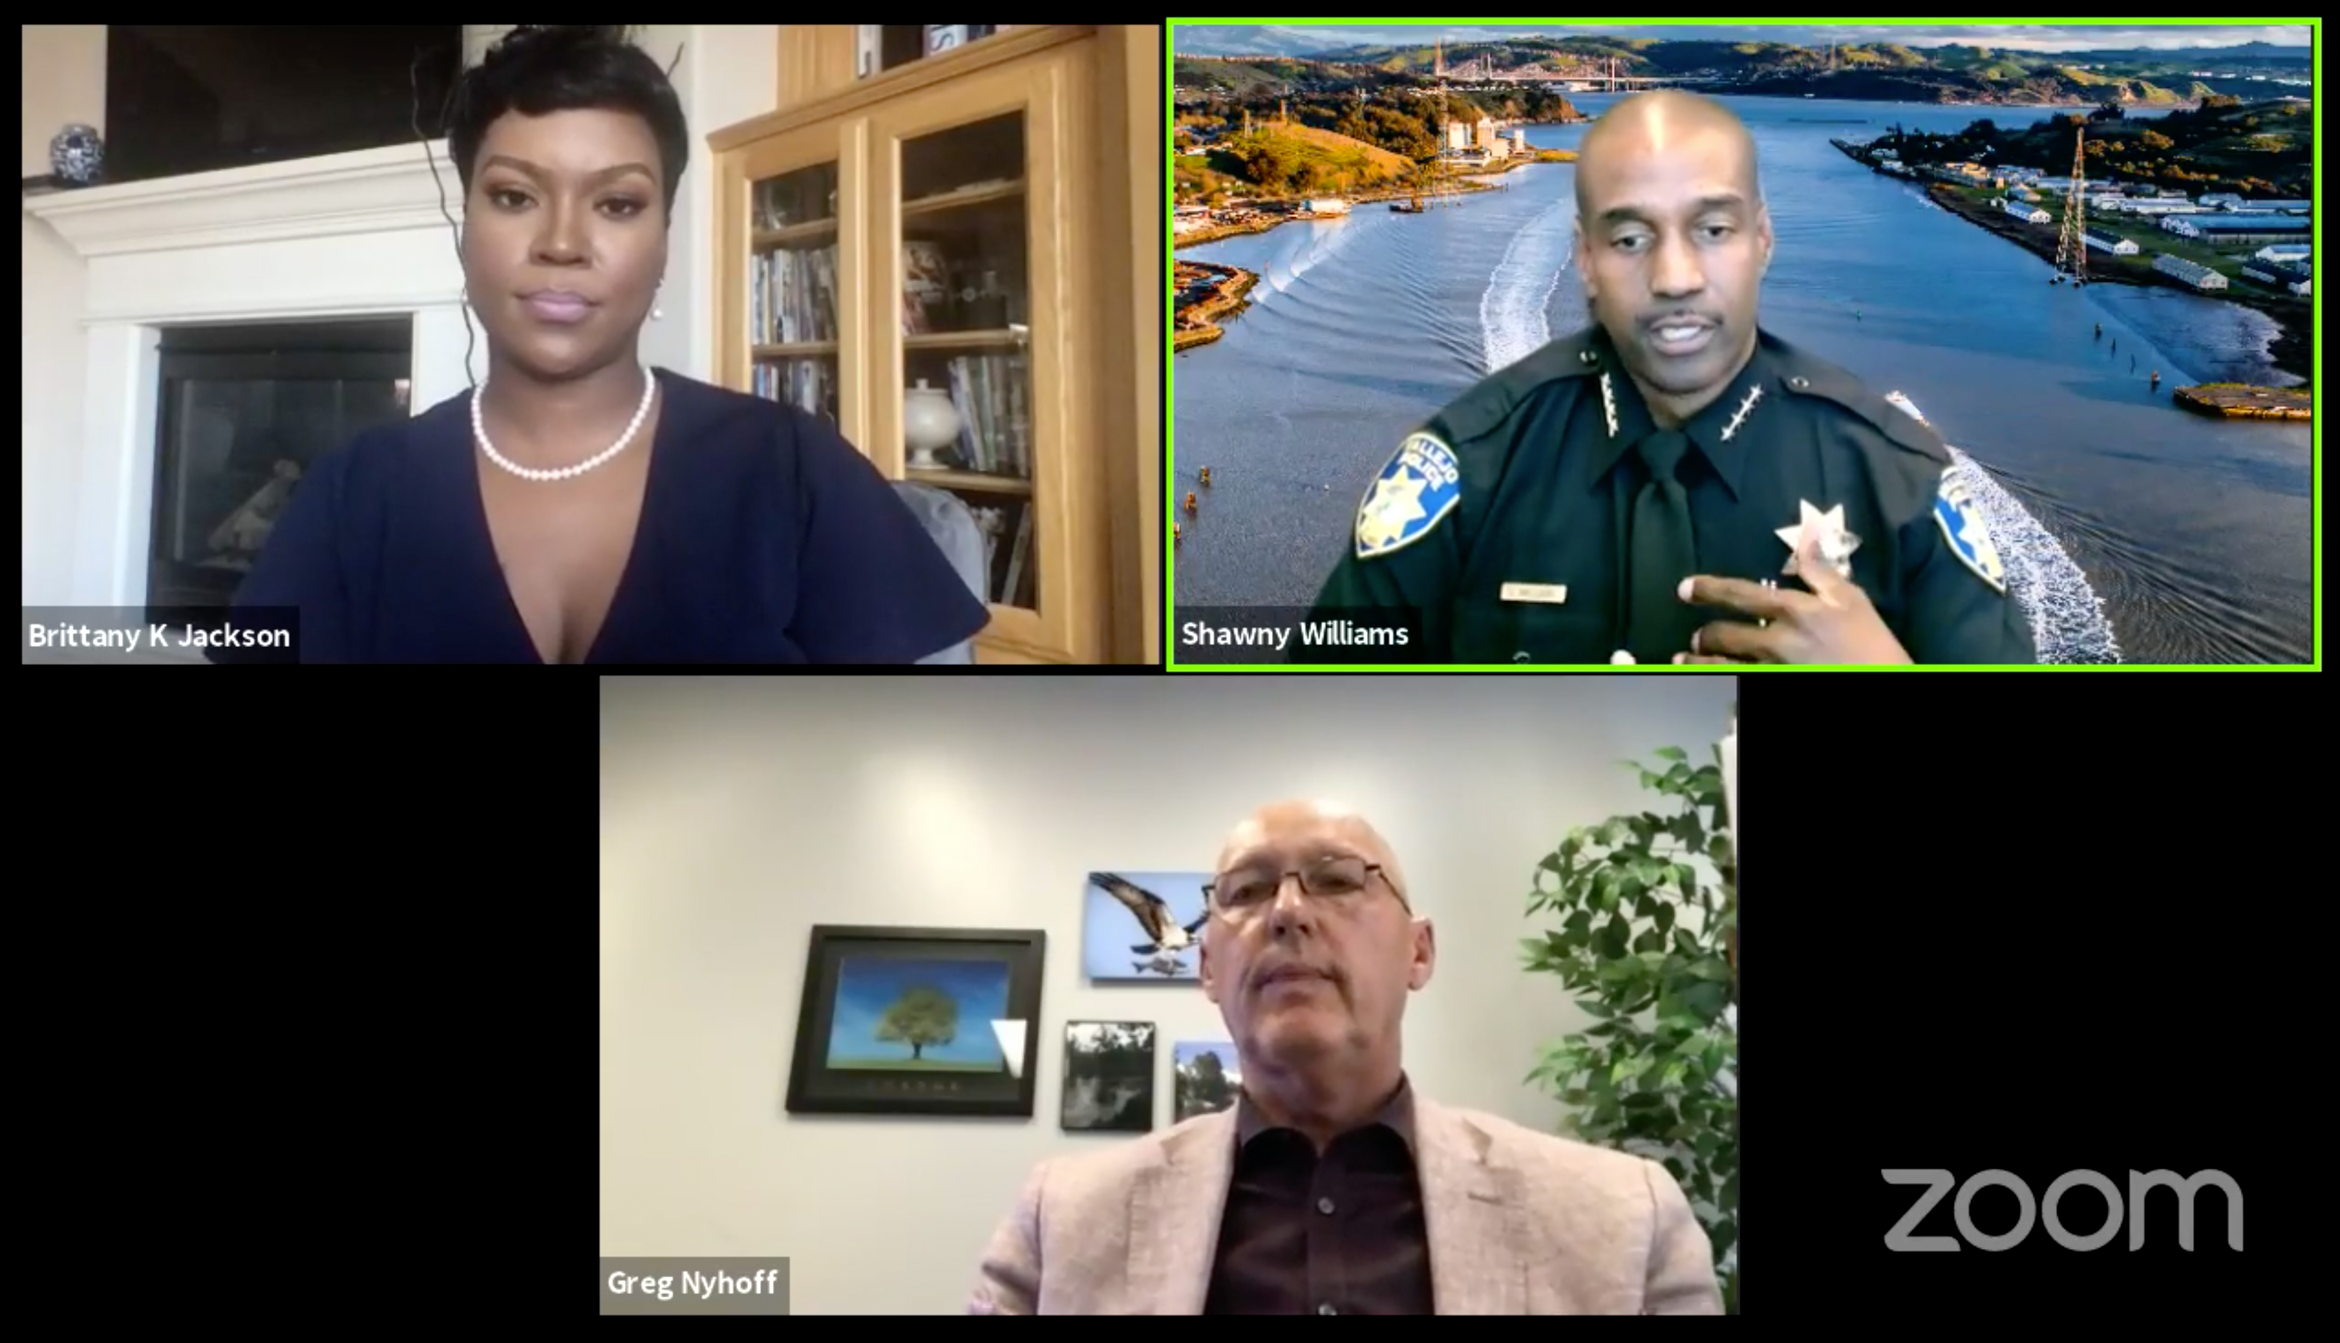 """A screenshot of Vallejo police spokesperson Brittany K. Jackson, Police Chief Shawny Williams, and City Manager Greg Nyhoff during a """"virtual town hall"""" on policing held over Zoom on July 23, 2020 in Vallejo, California."""